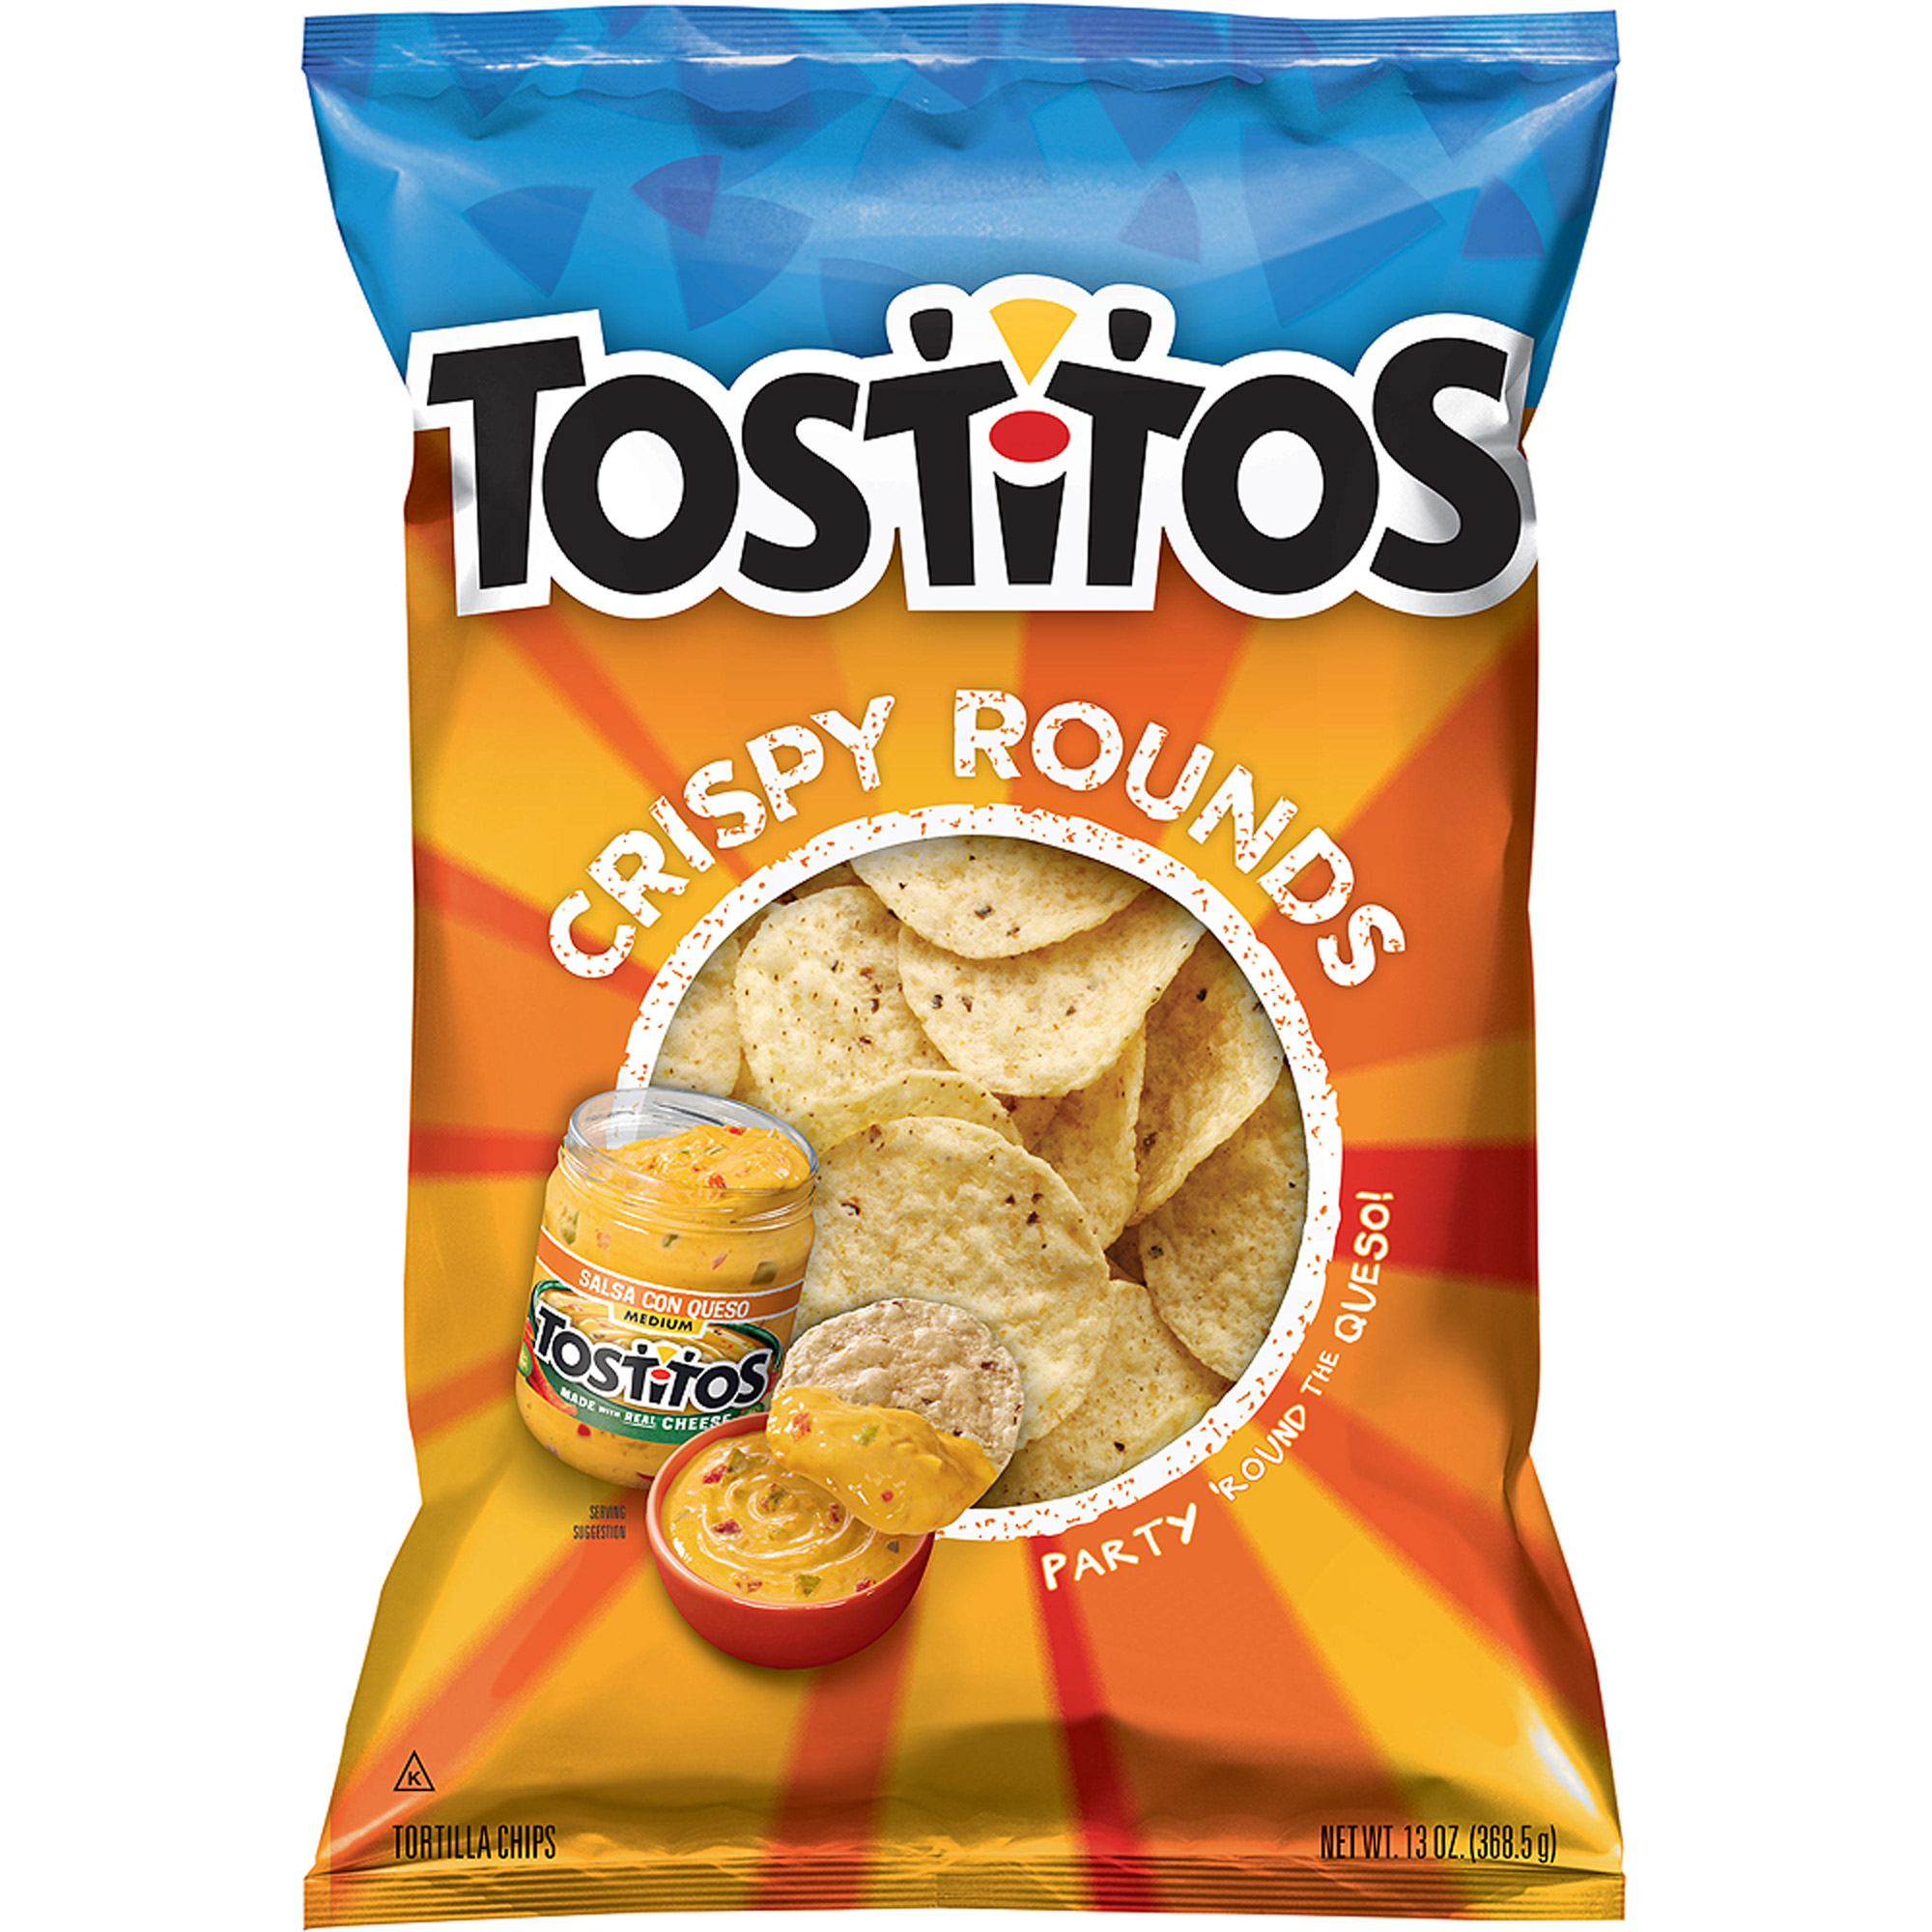 Tostitos Crispy Rounds Tortilla Chips, 13 oz.